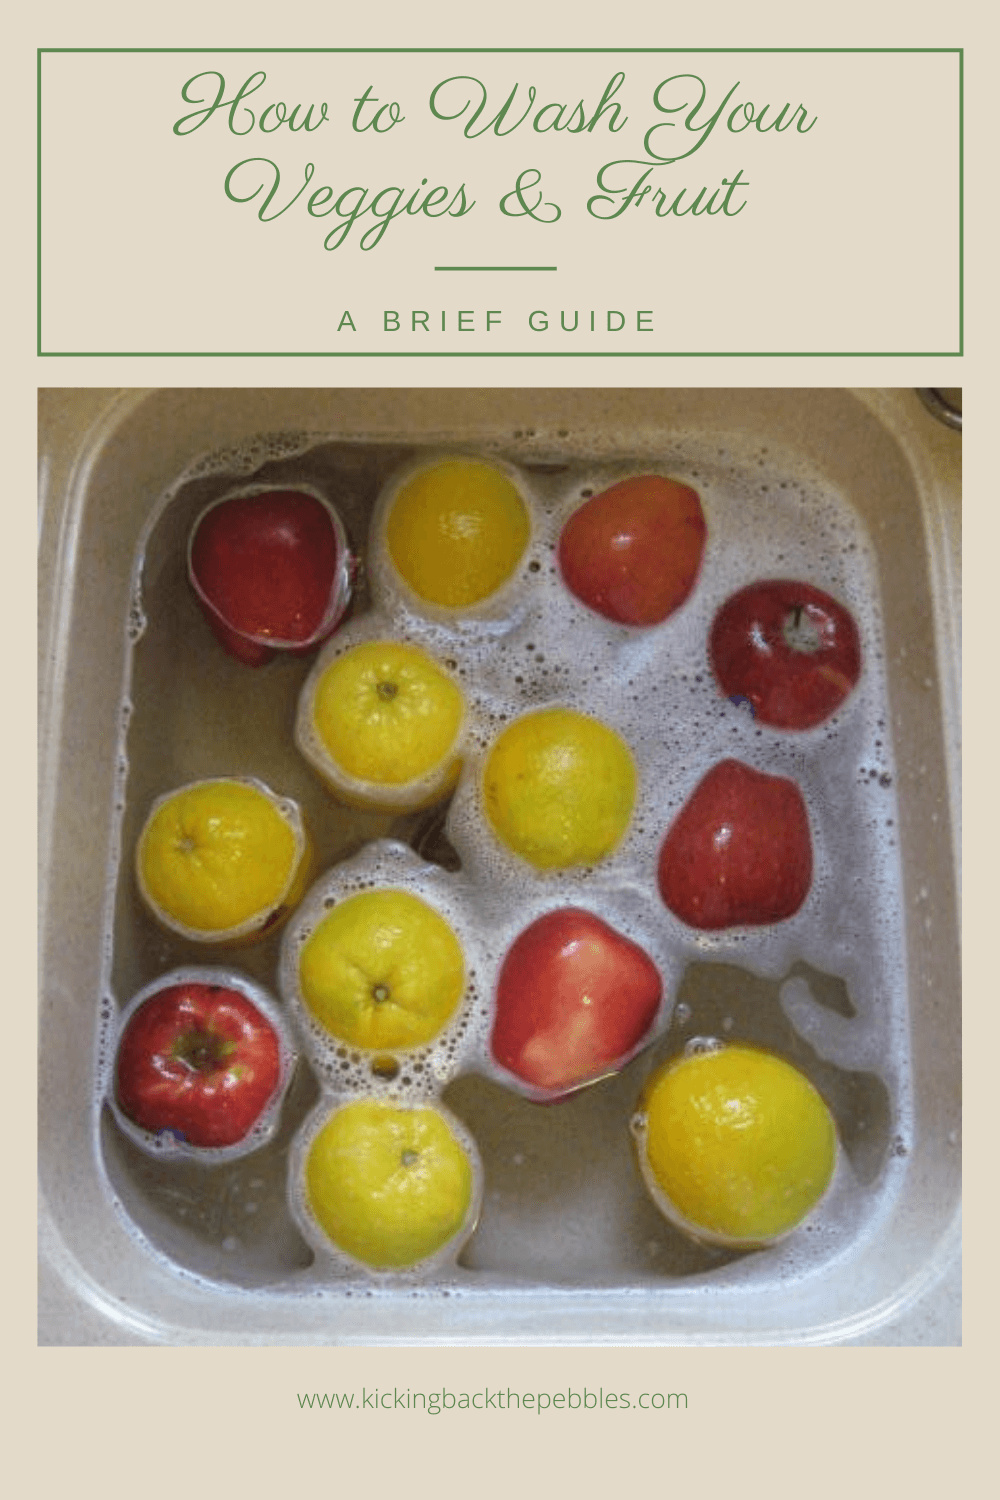 How to Wash Your Veggies & Fruit | Kicking Back the Pebbles